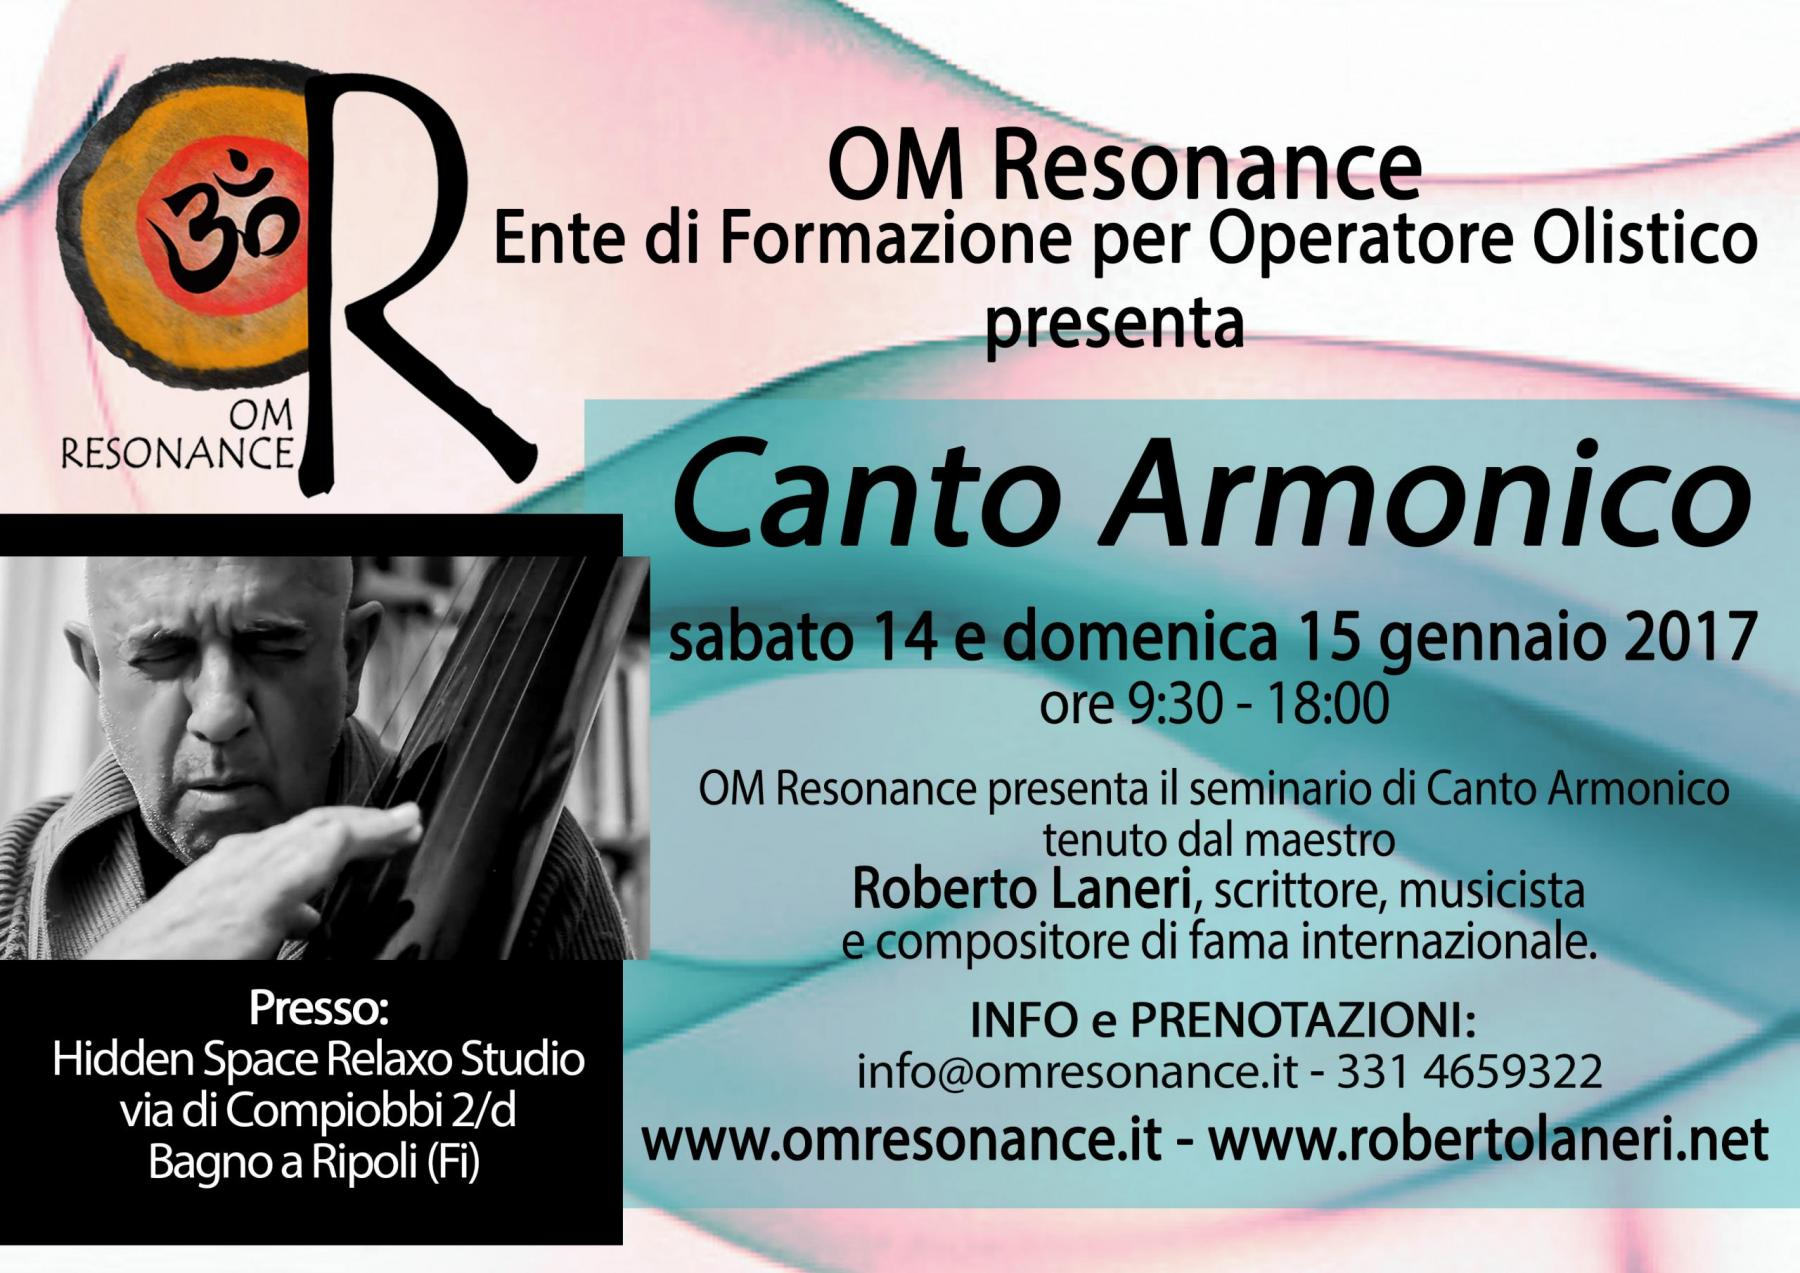 canto armonico om resonance